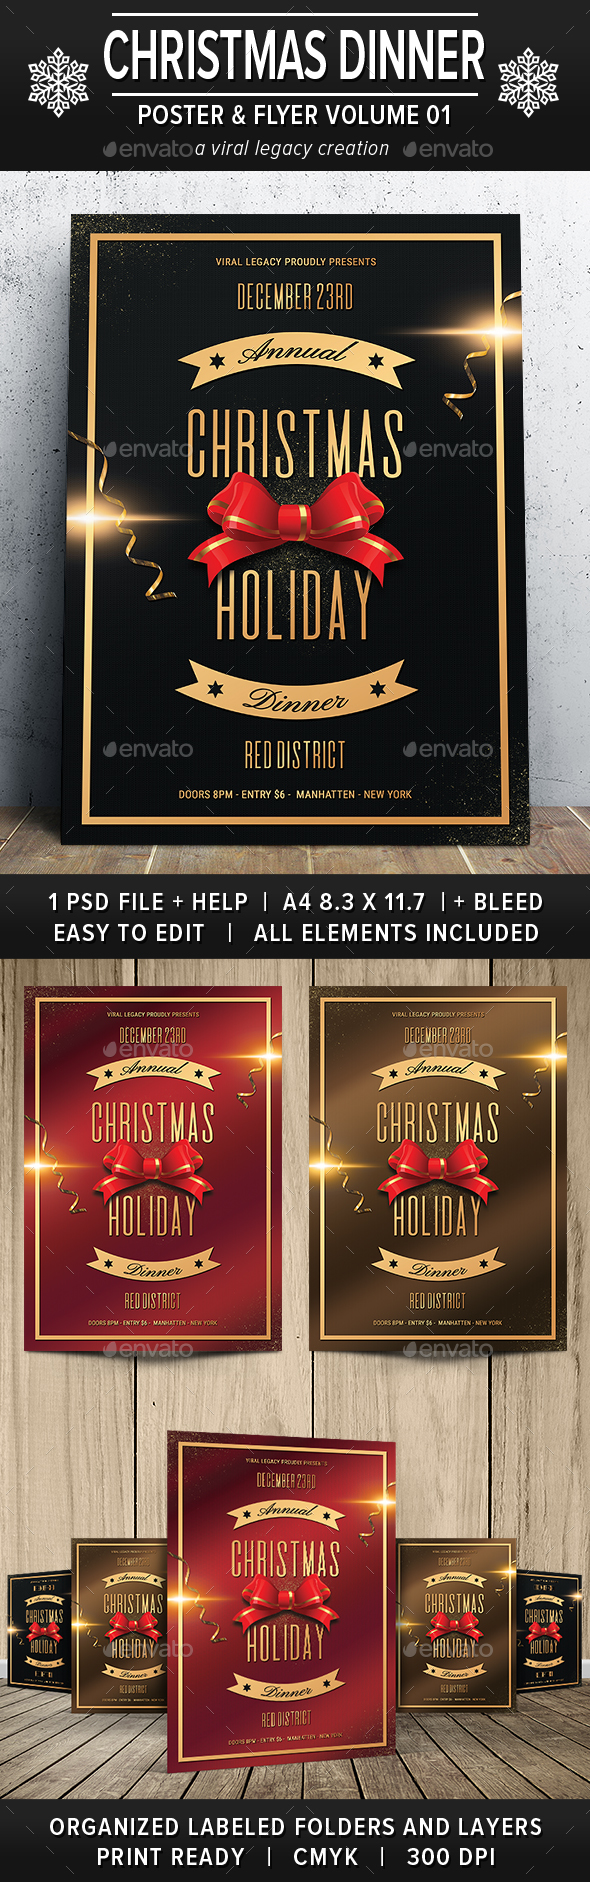 Christmas Holiday Dinner Poster/Flyer V01 - Flyers Print Templates